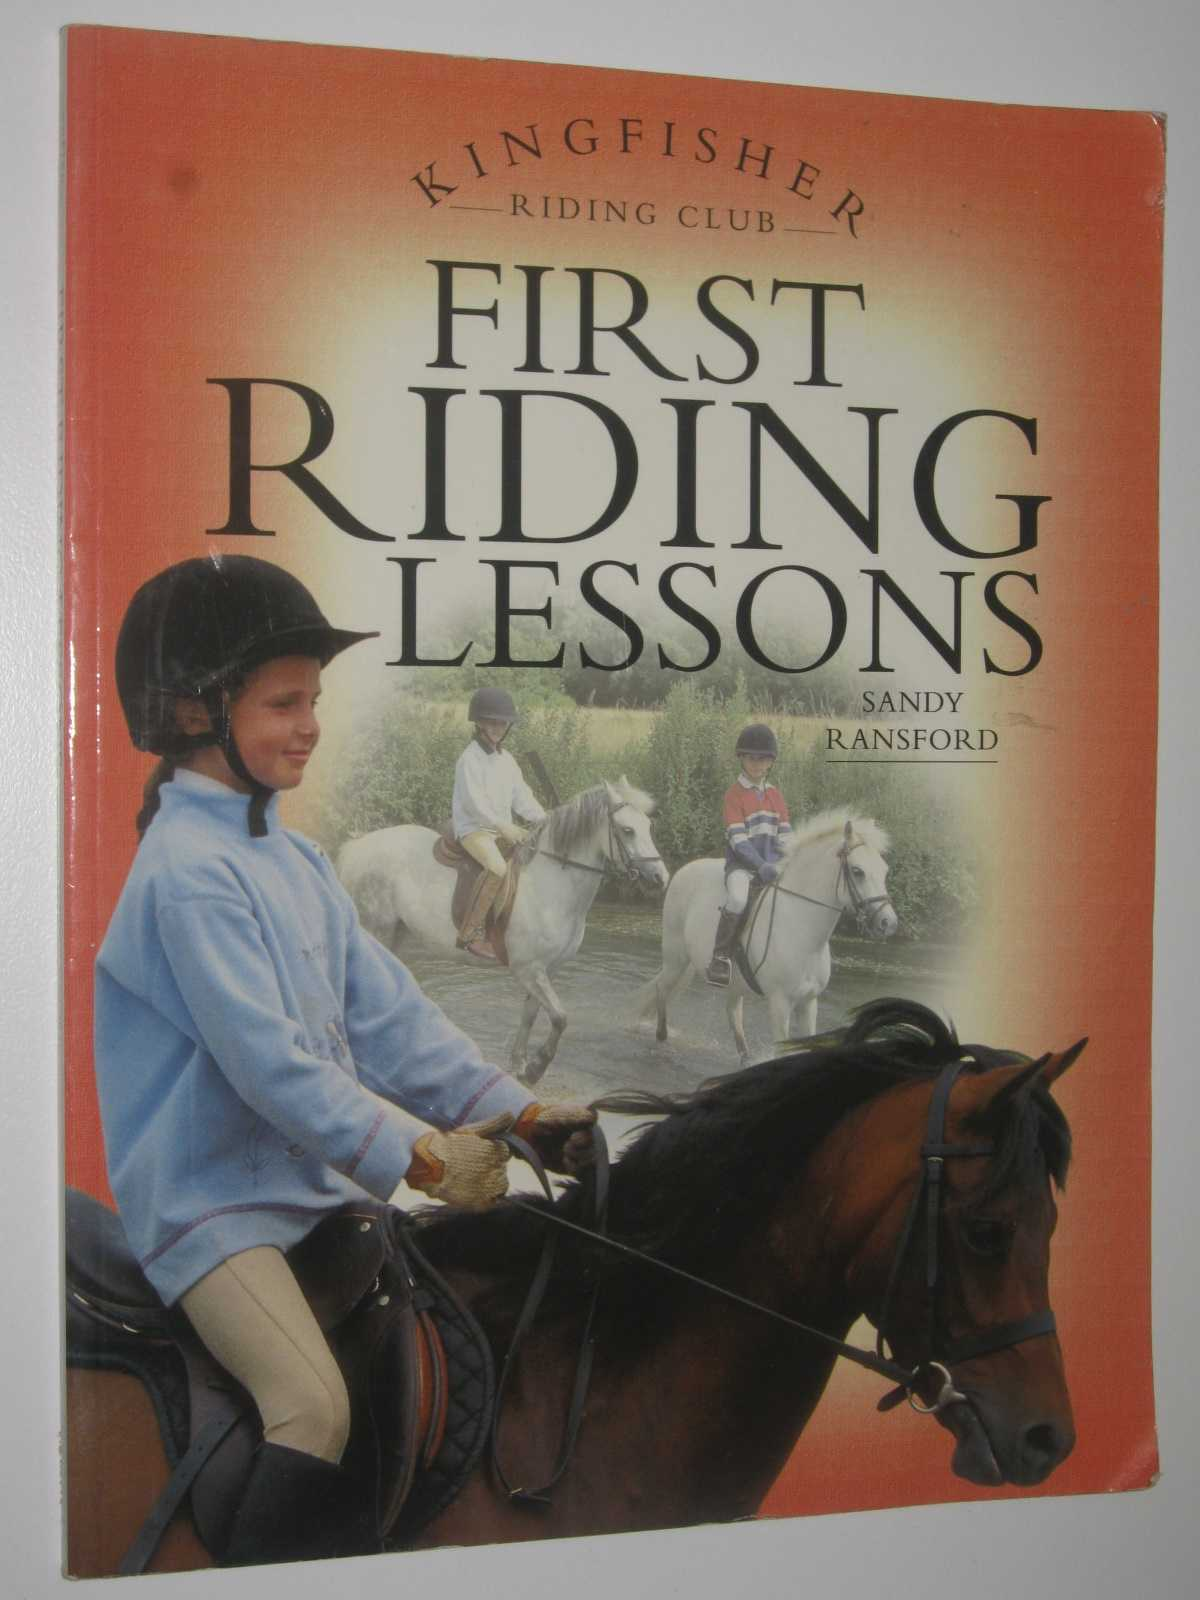 Image for First Riding Lessons - Kingfisher Riding Club Series